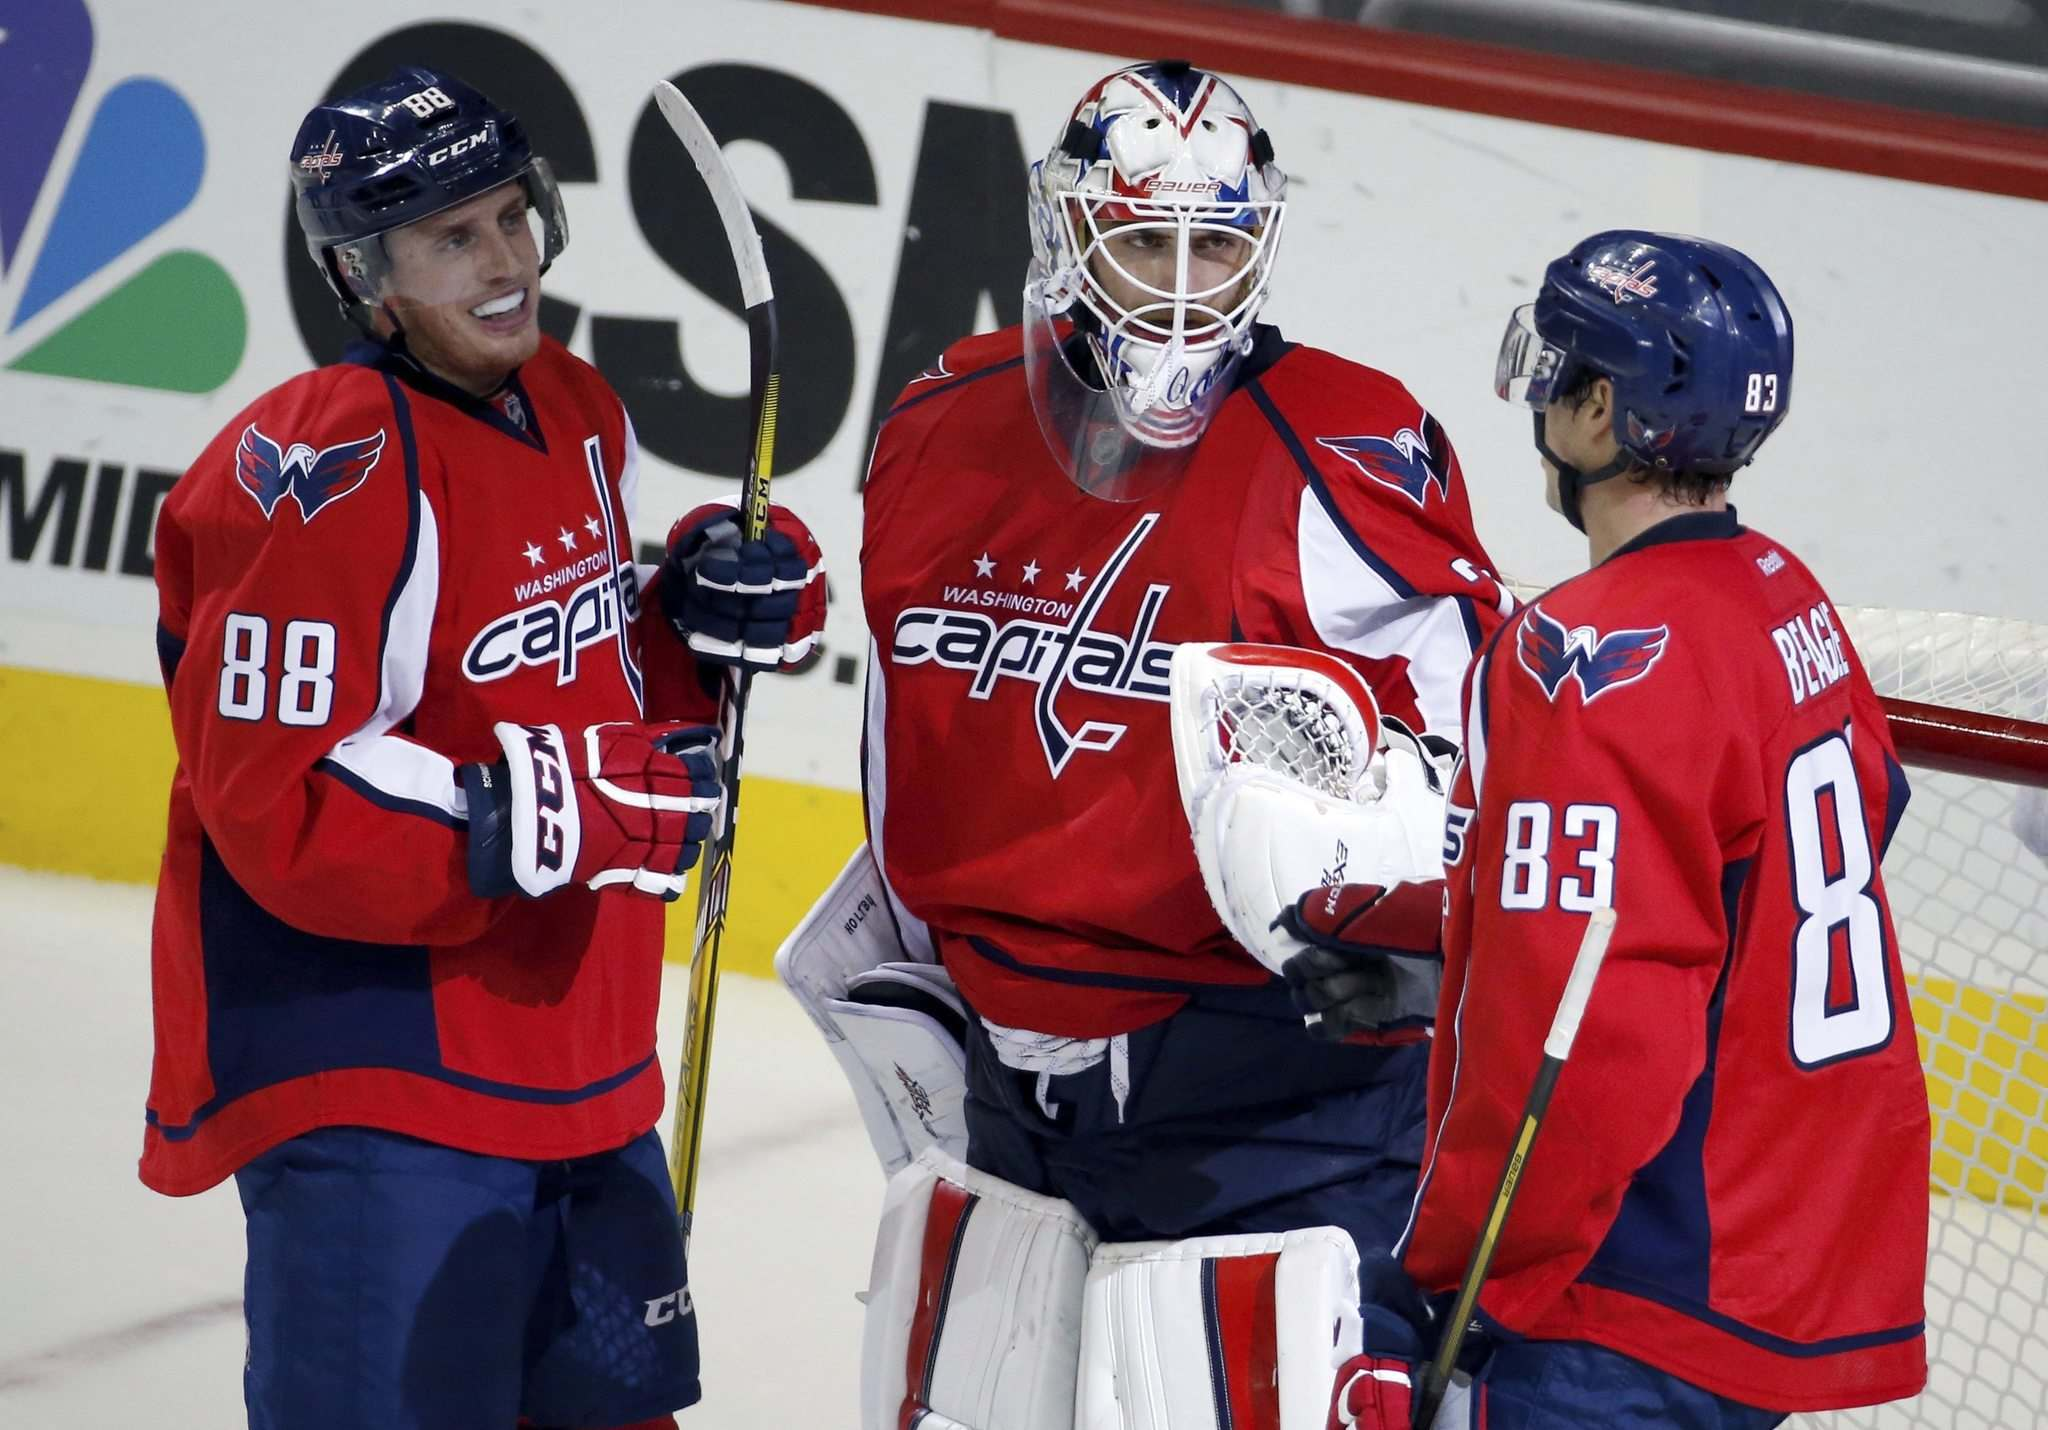 Nate Schmidt (left), with former Washington Capitals teammates Braden Holtby (centre) and Jay Beagle, signed as an undrafted free agent after playing at the University of Minnesota. (Alex Brandon / The Associated Press files)